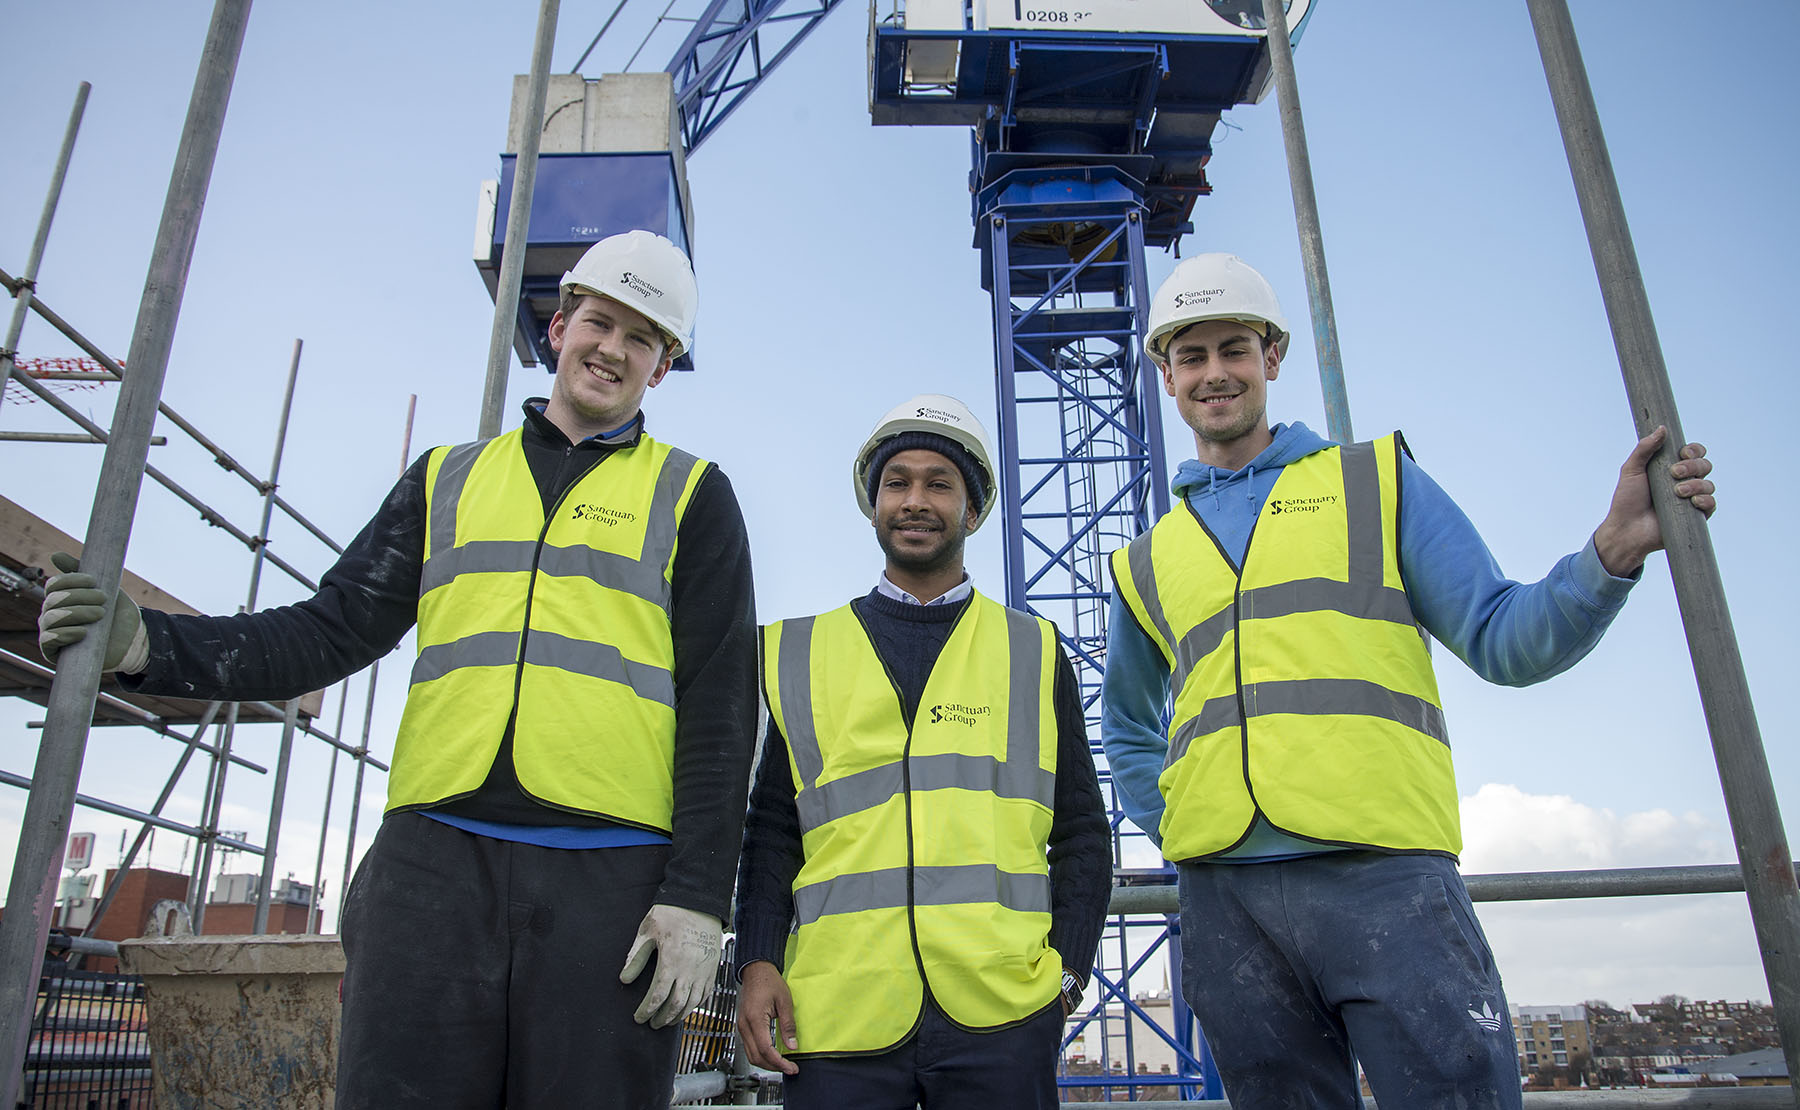 Apprentice James Marks, Sanctuary's Ali Ahmed and Apprentice Harry Carter on top of the Artisan Court development.